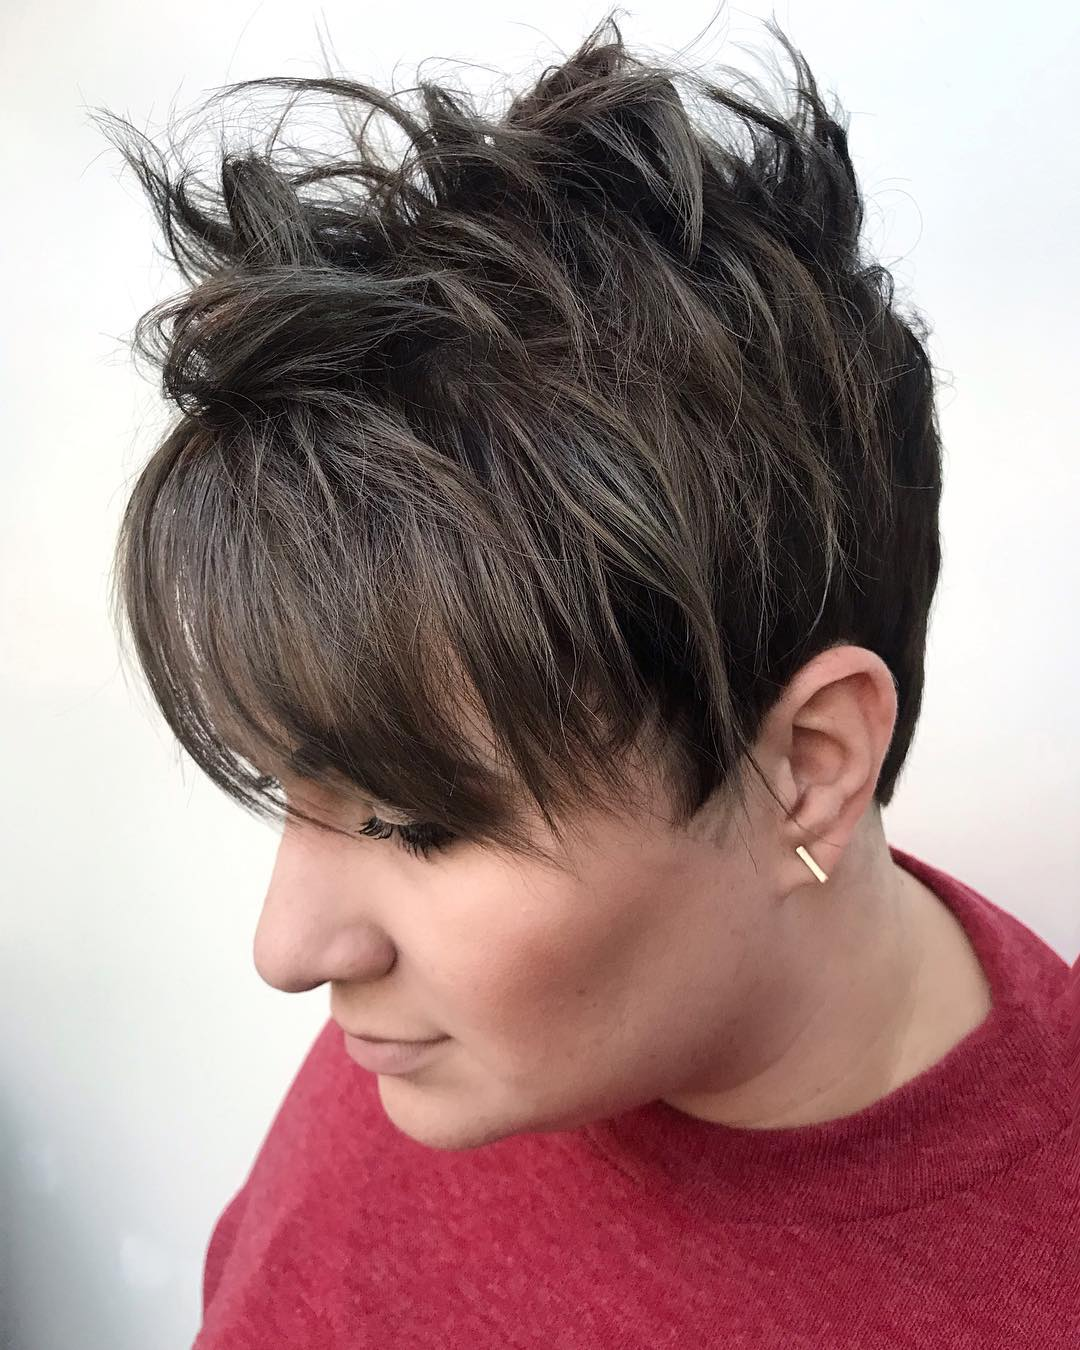 Super Short Cuts for Women with Double Chins